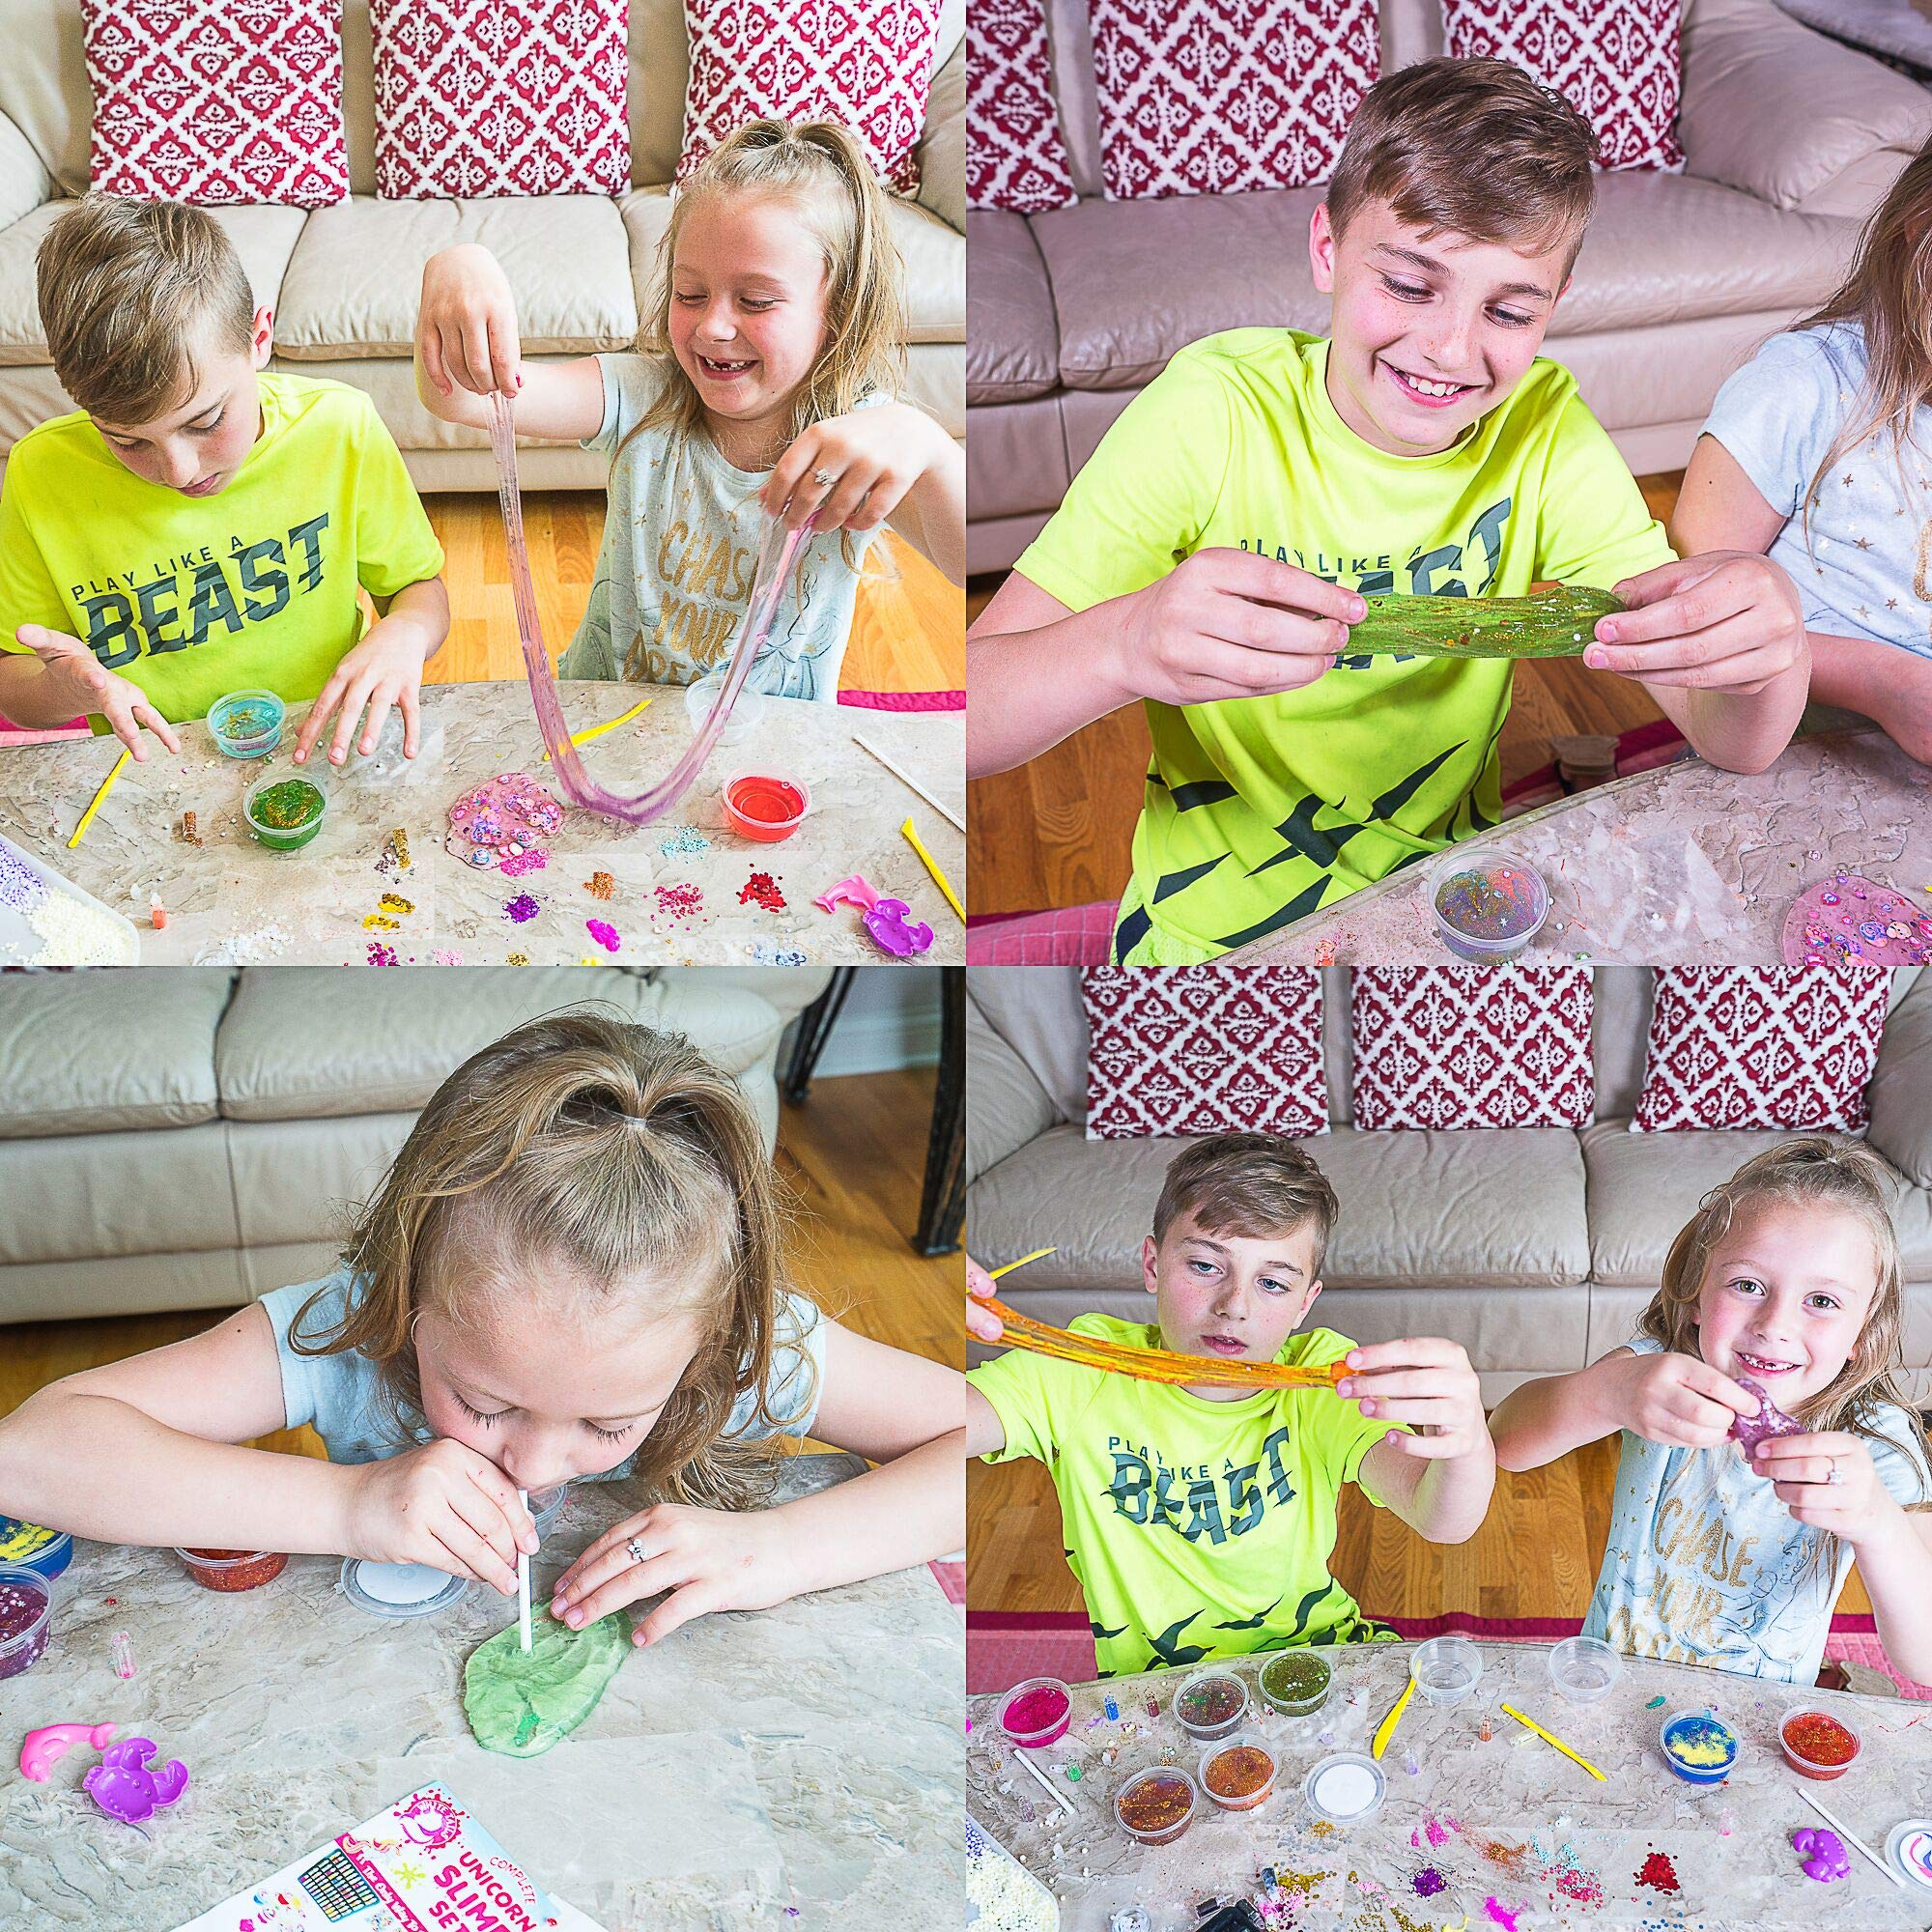 White Tails Unicorn Slime Kit for Girls and Boys 12 Containers of Clear Slime for Kids by White Tails (Image #5)